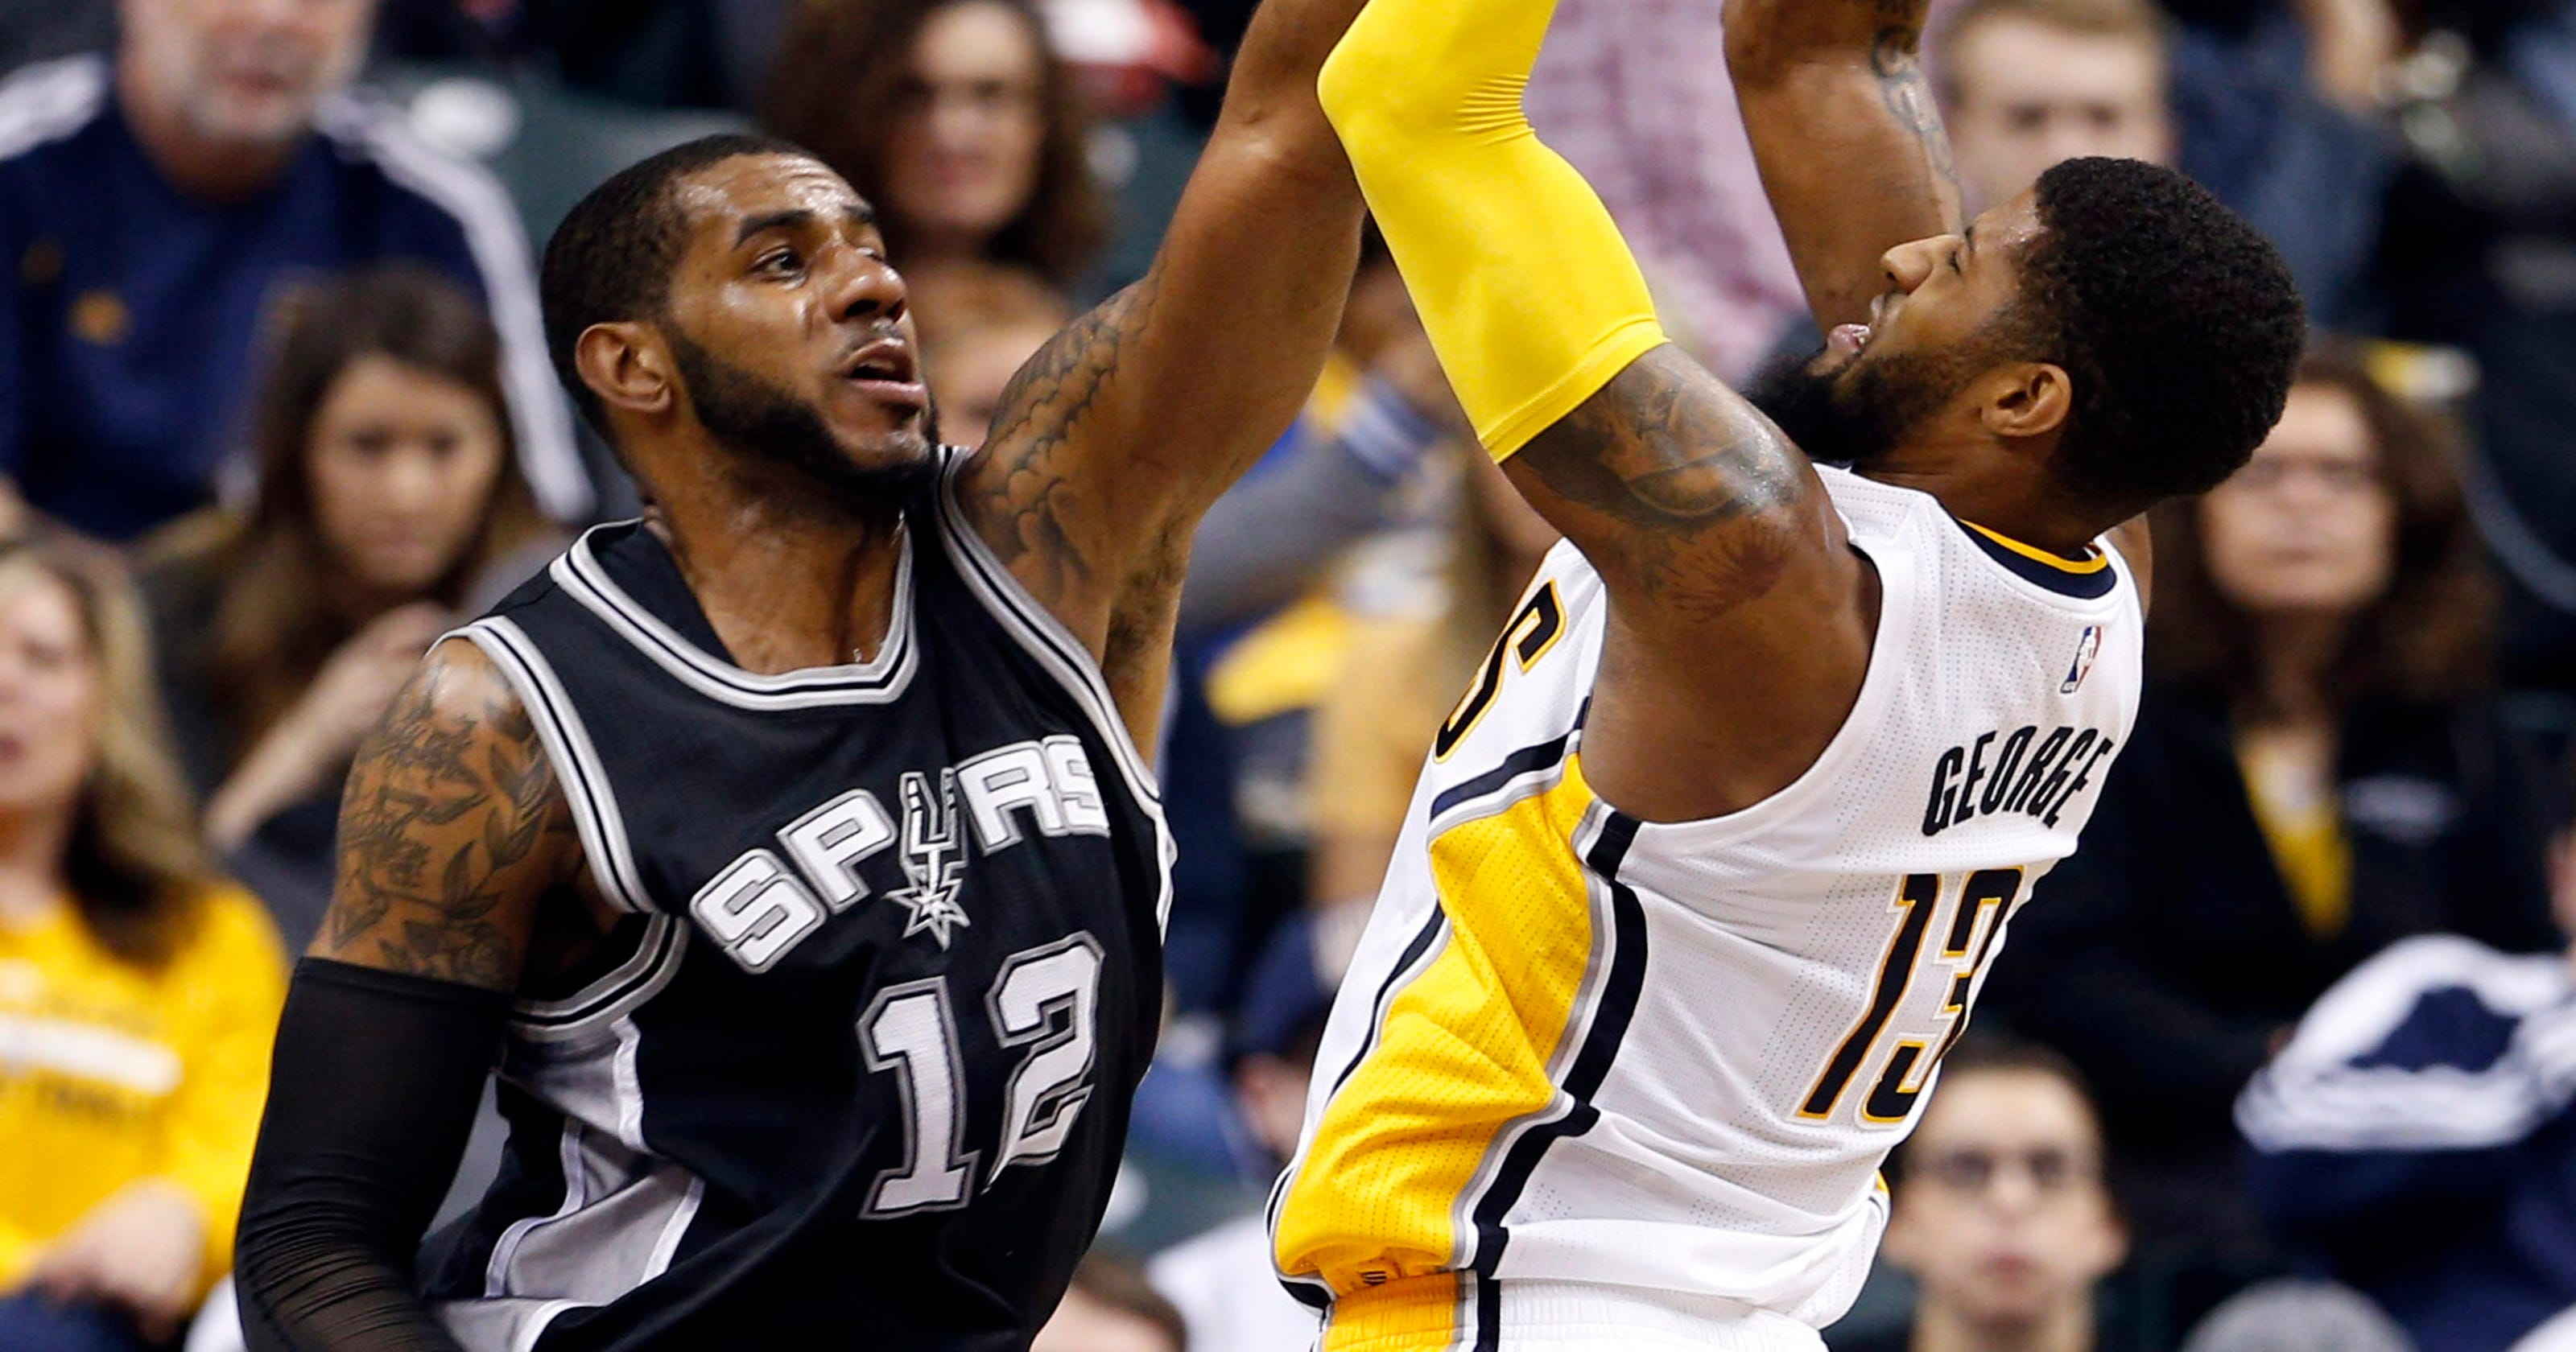 016388ea9 San Antonio Spurs  LaMarcus Aldridge has a history of heart-related issues